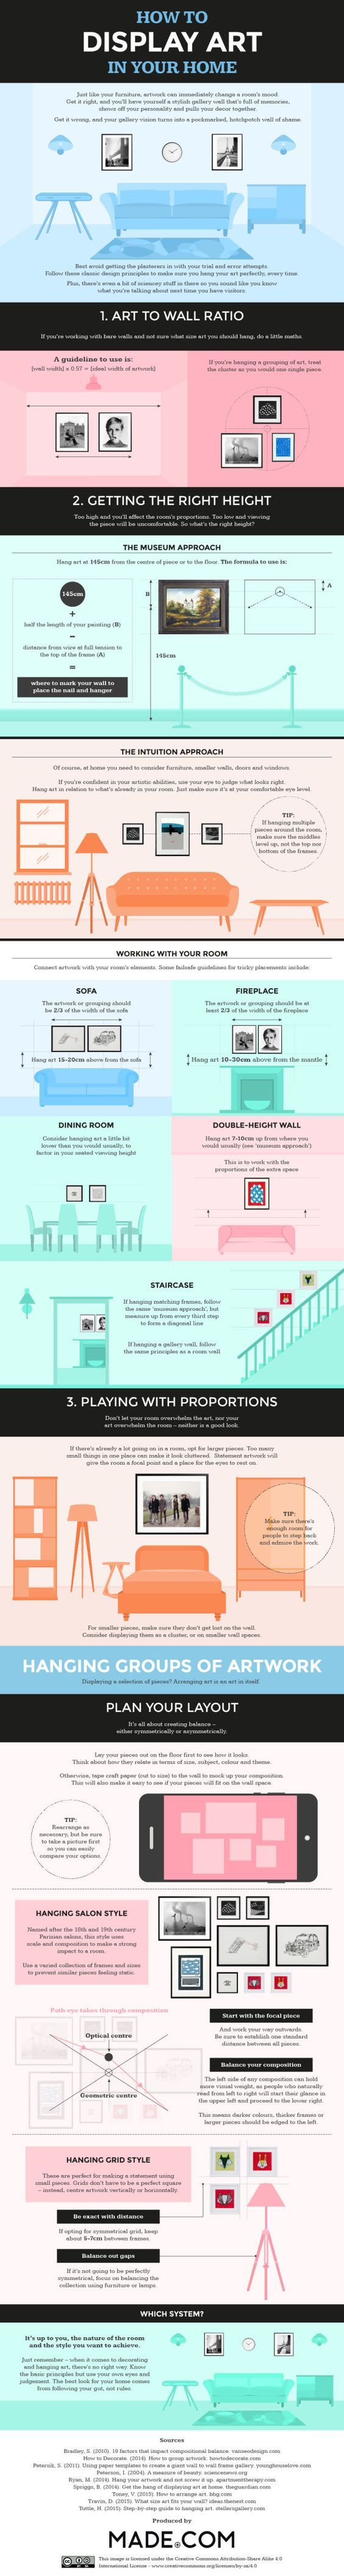 These 9 home decor charts are THE BEST! I'm so glad I found this! These have seriously helped me redecorate my rooms and make them look AMAZING! Definitely pinning this!